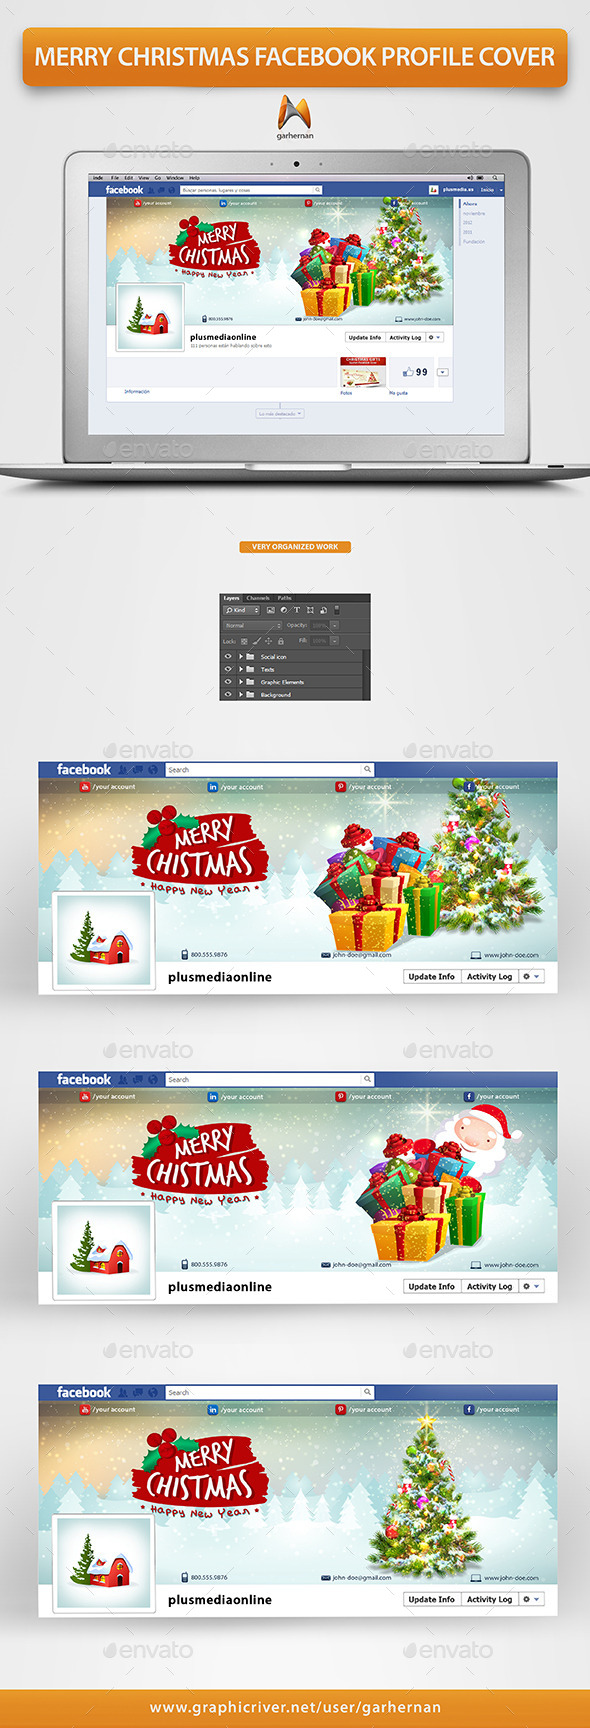 Merry Christmas Facebook Profile Cover - Facebook Timeline Covers Social Media